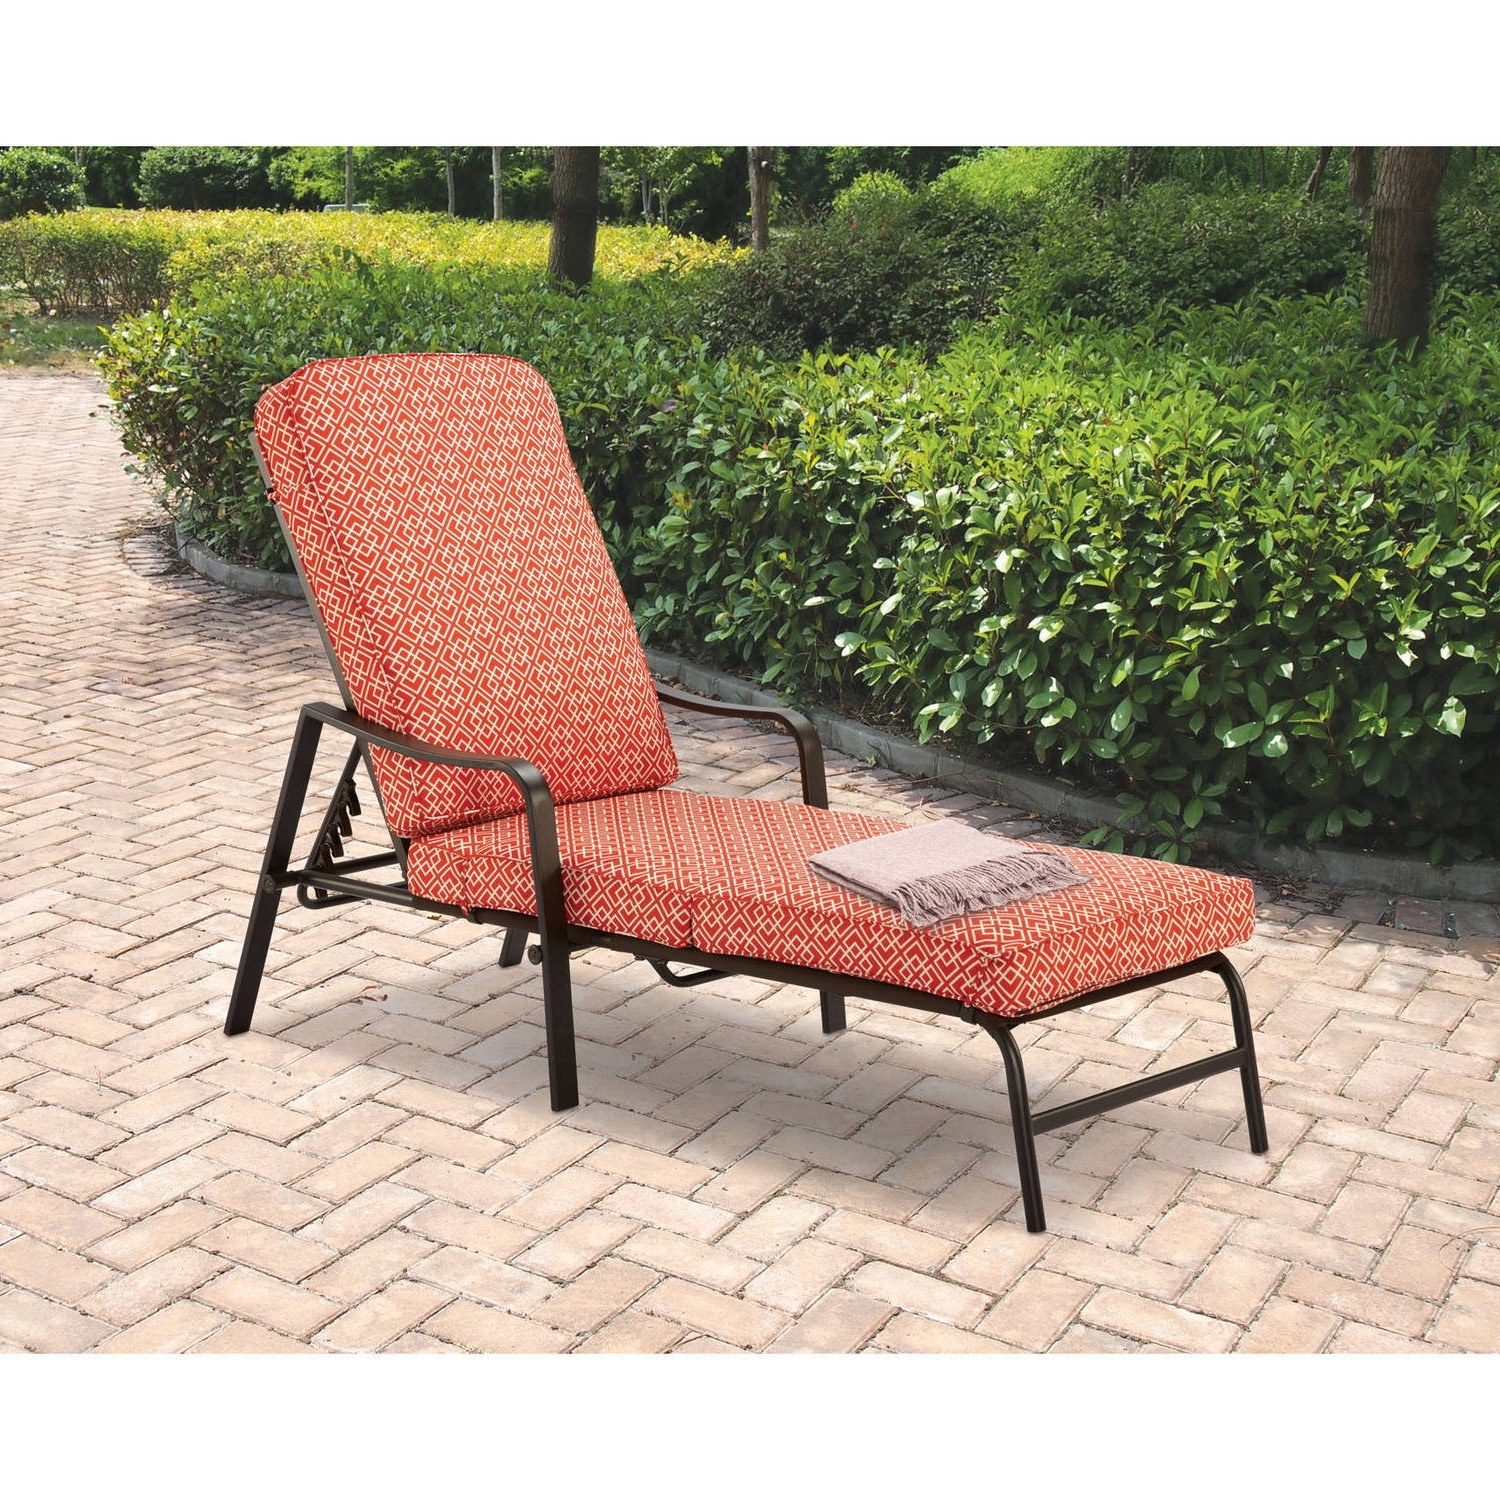 Favorite Mainstays Outdoor Chaise Lounge, Orange Geo Pattern – Walmart In Outdoor Chaise Lounge Chairs At Walmart (View 9 of 15)